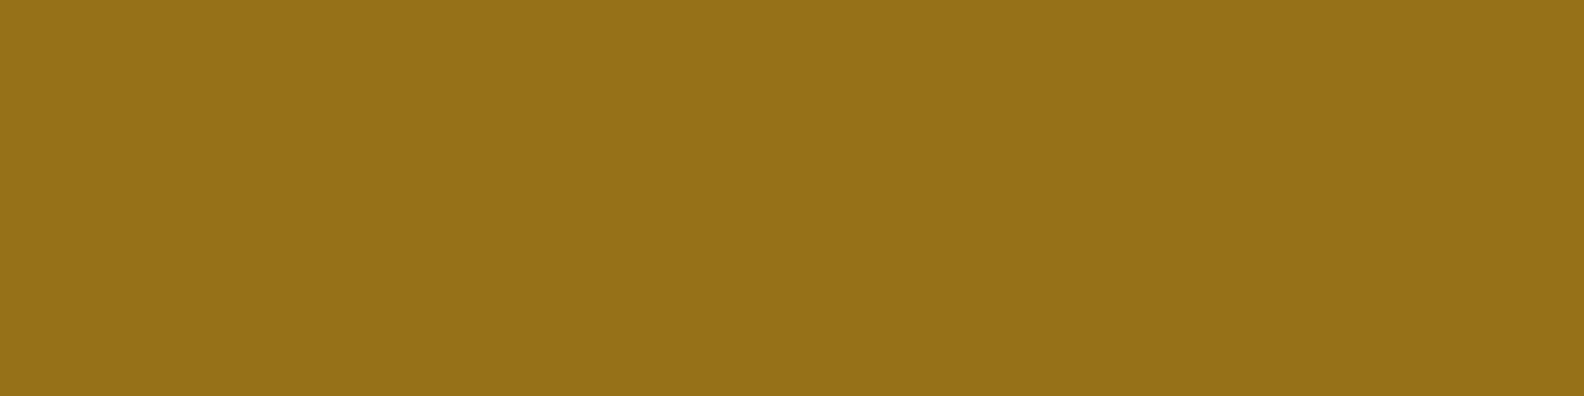 1584x396 Bistre Brown Solid Color Background